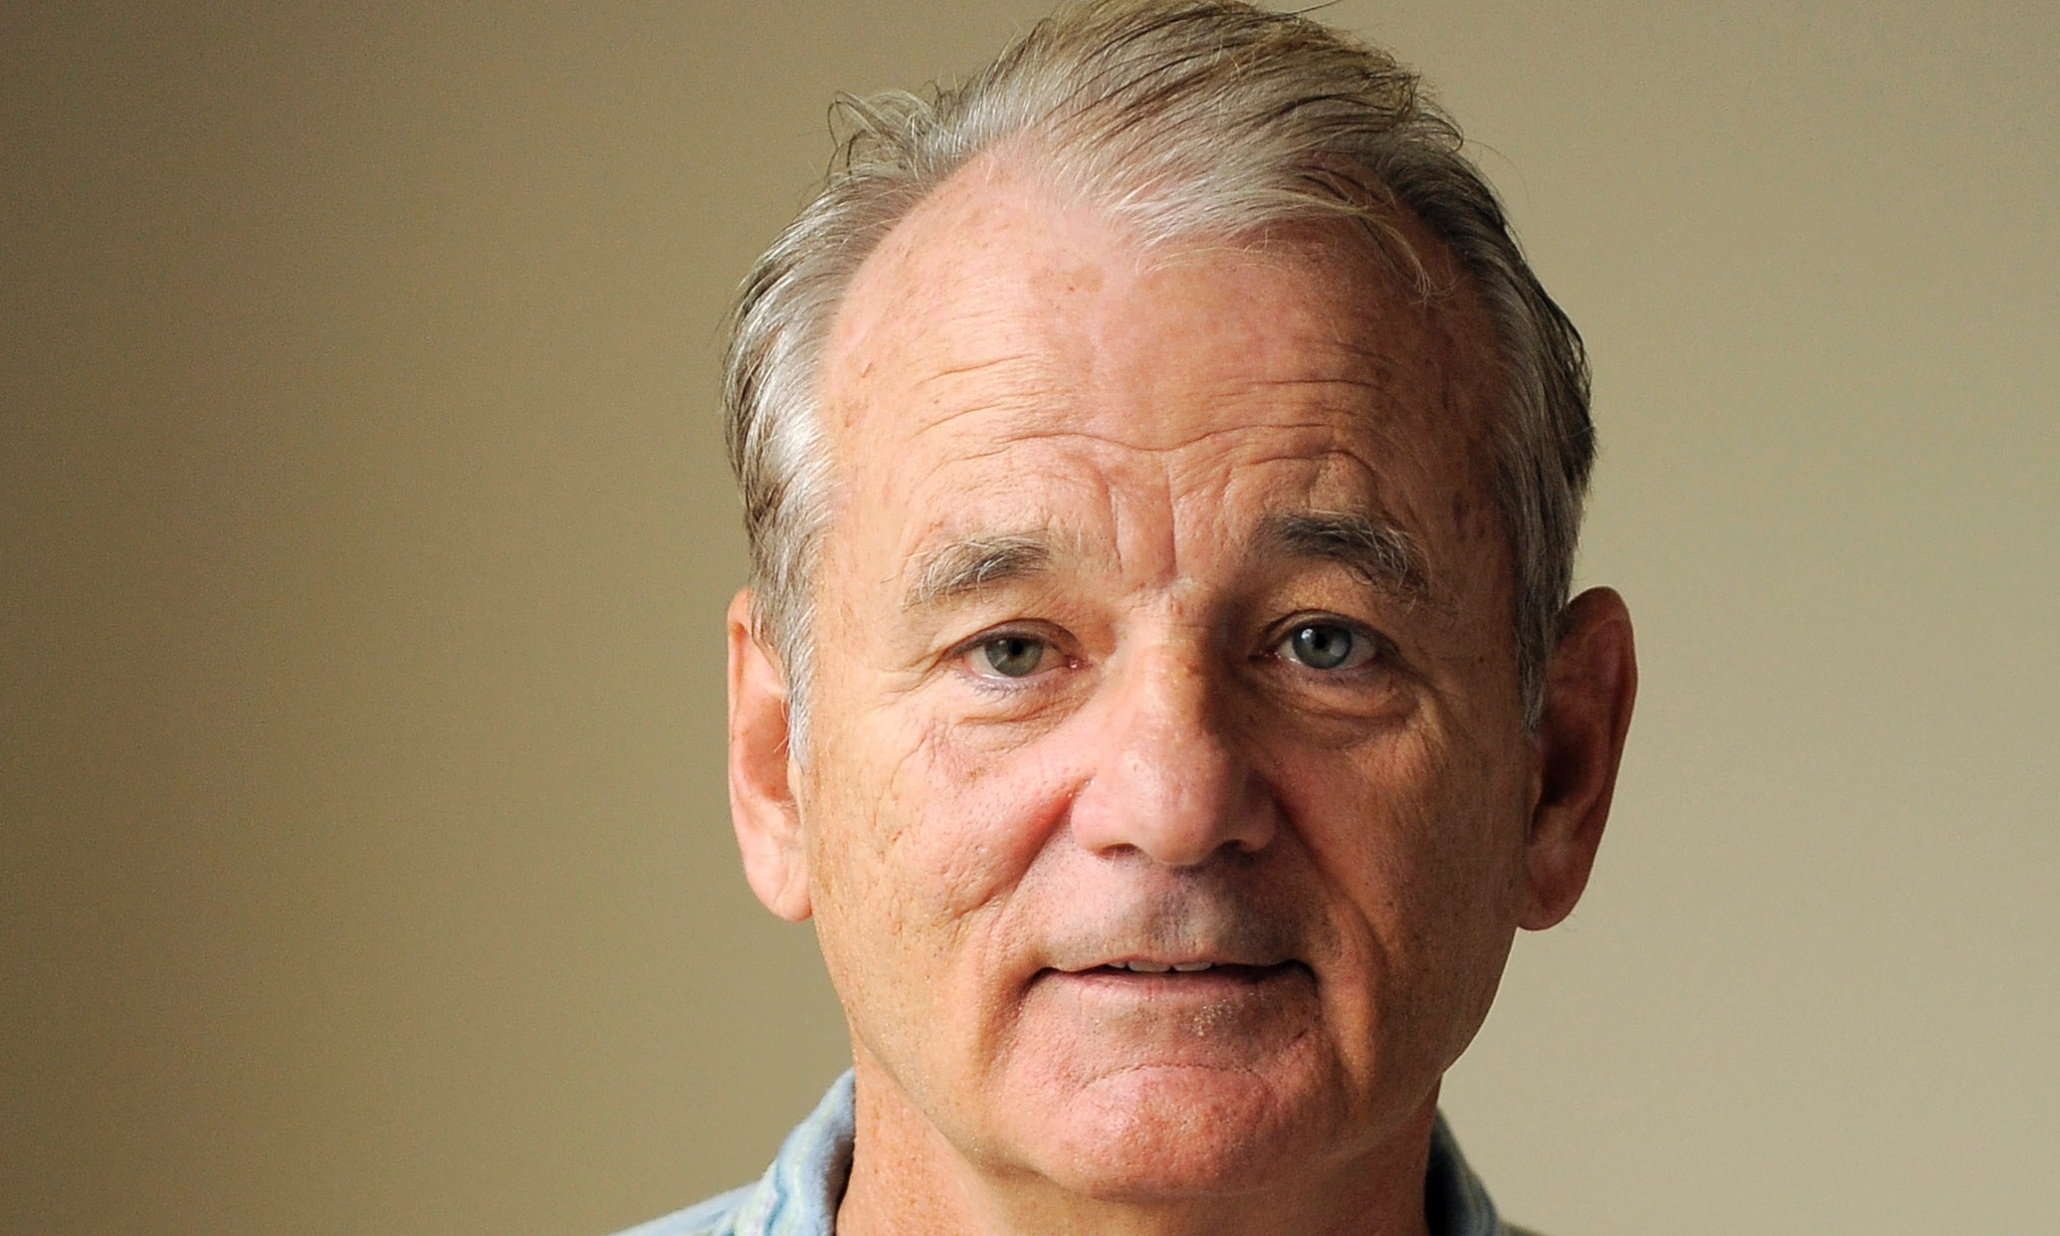 bill murray hd wallpaper - photo #34